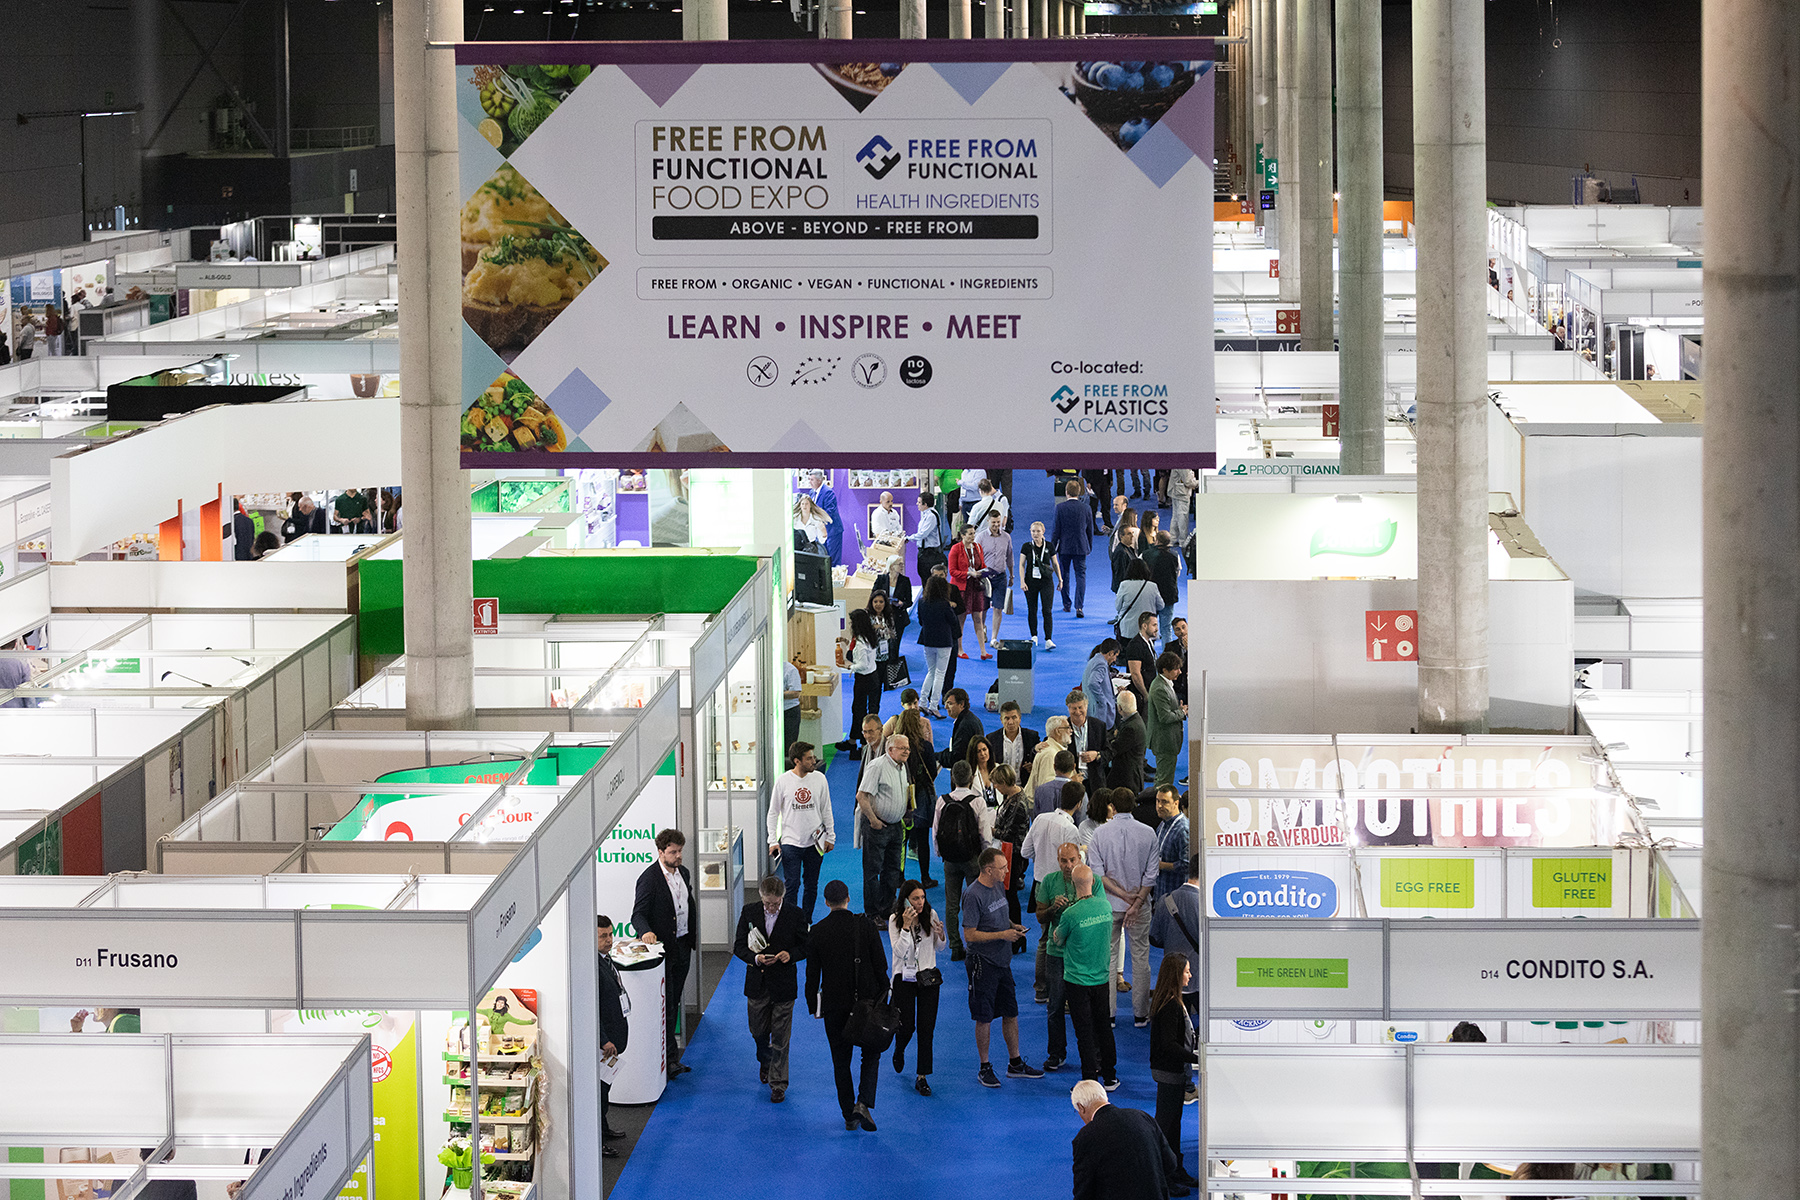 Free From Functional & Health Ingredients celebrates a triumphant return to Barcelona